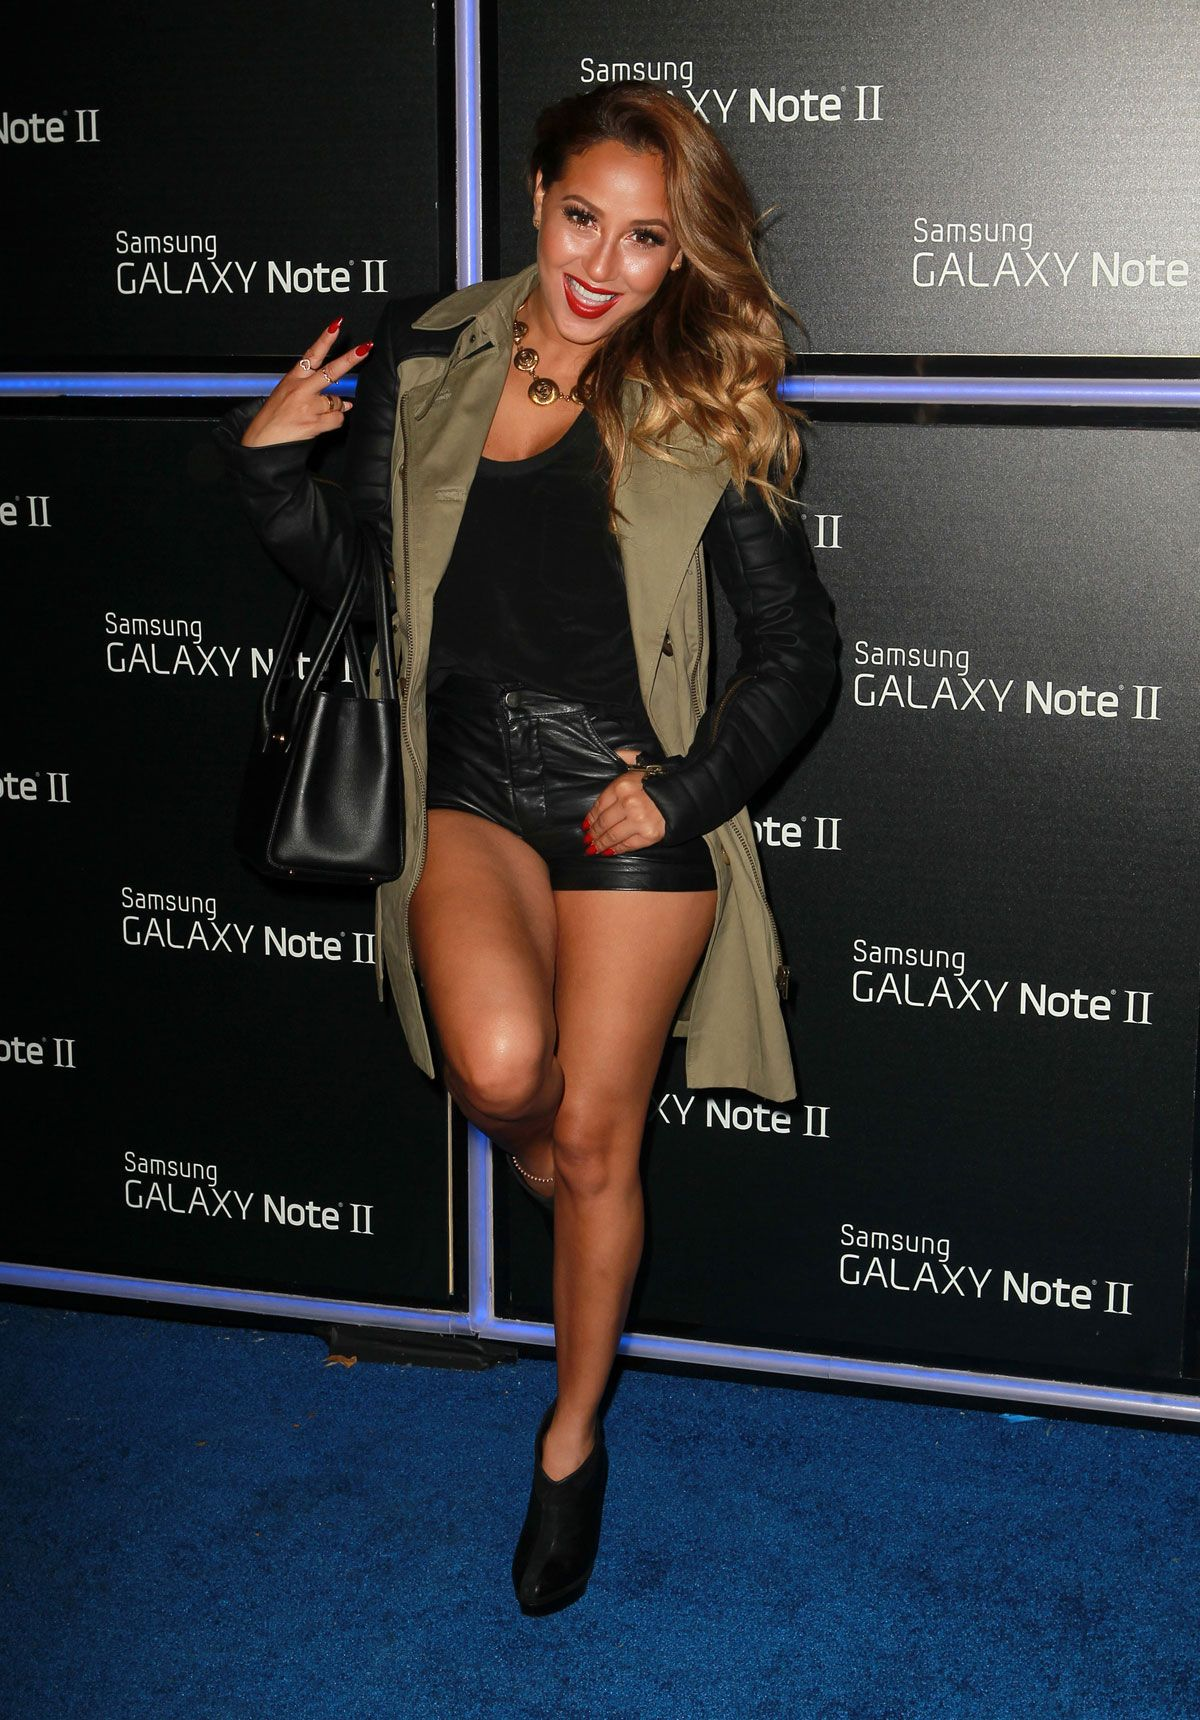 adrienne bailon songsadrienne bailon vk, adrienne bailon mp3, adrienne bailon y rob kardashian, adrienne bailon superbad mp3, adrienne bailon uncontrollable mp3, adrienne bailon dresses, adrienne bailon instagram, adrienne bailon uncontrollable, adrienne bailon wedding, adrienne bailon beyonce, adrienne bailon songs, adrienne bailon israel houghton, adrienne bailon uncontrollable lyrics